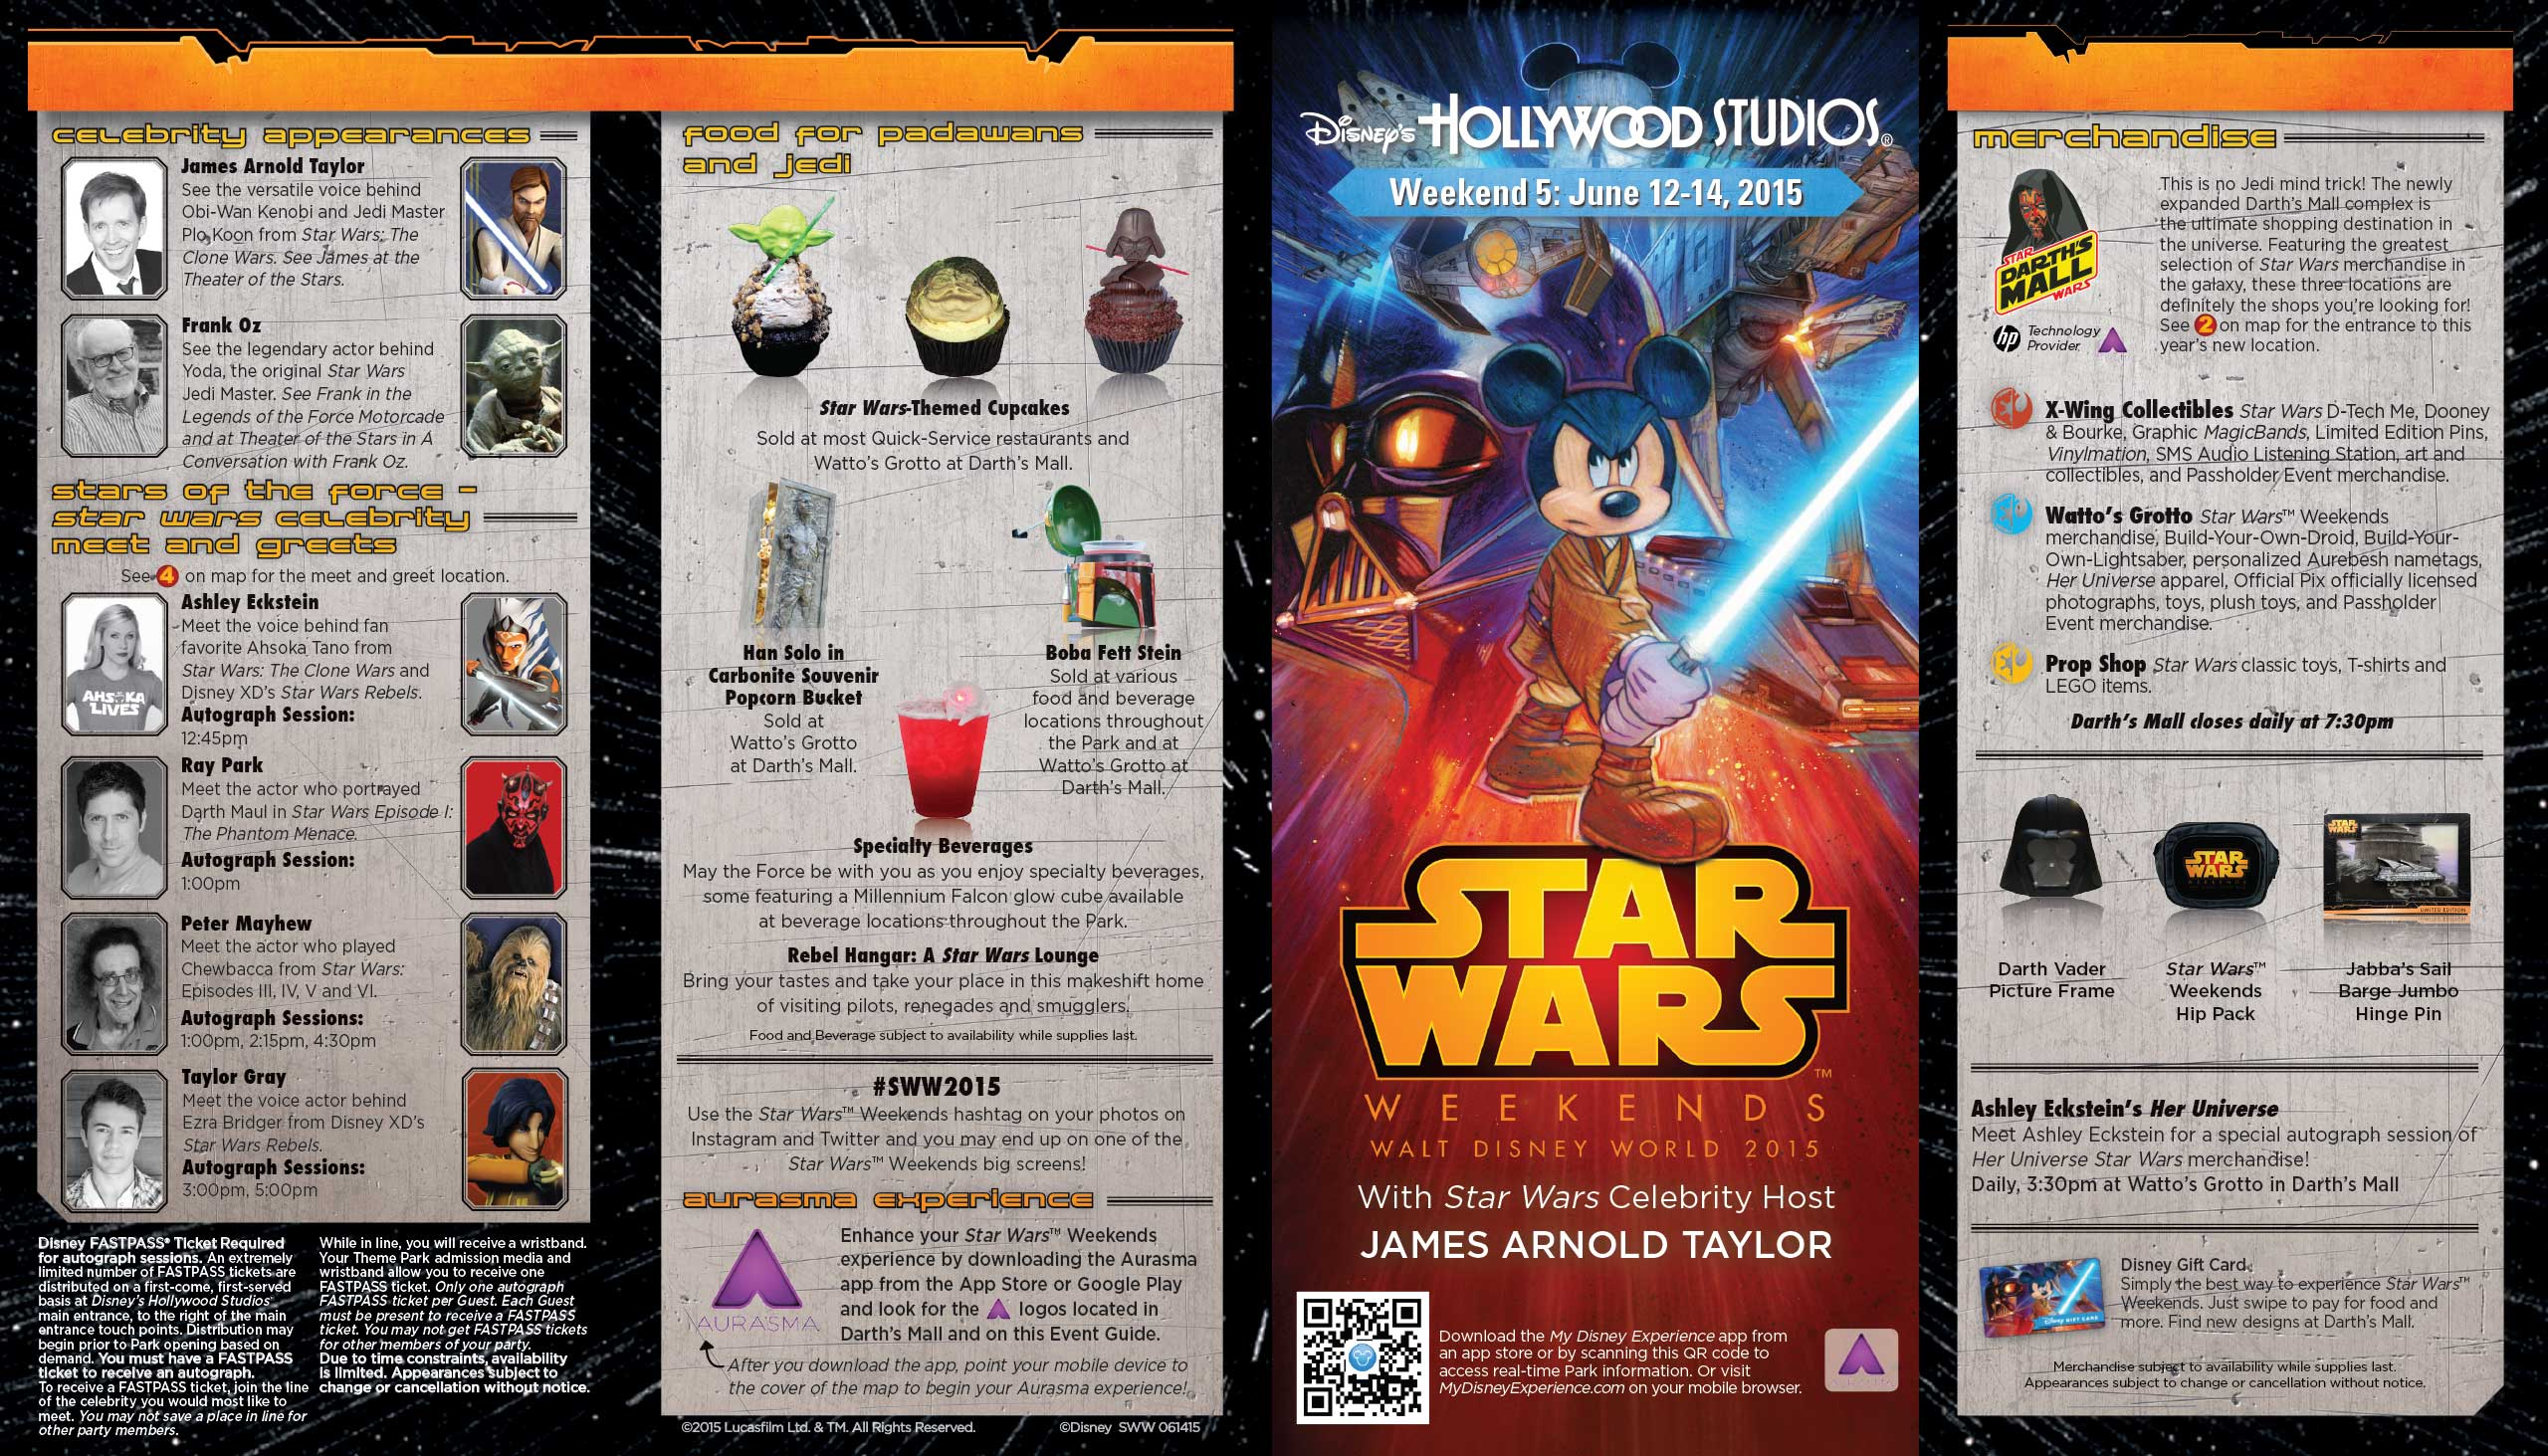 2015 Star Wars Weekends June 12 - 14 Weekend 5 guide map - Front